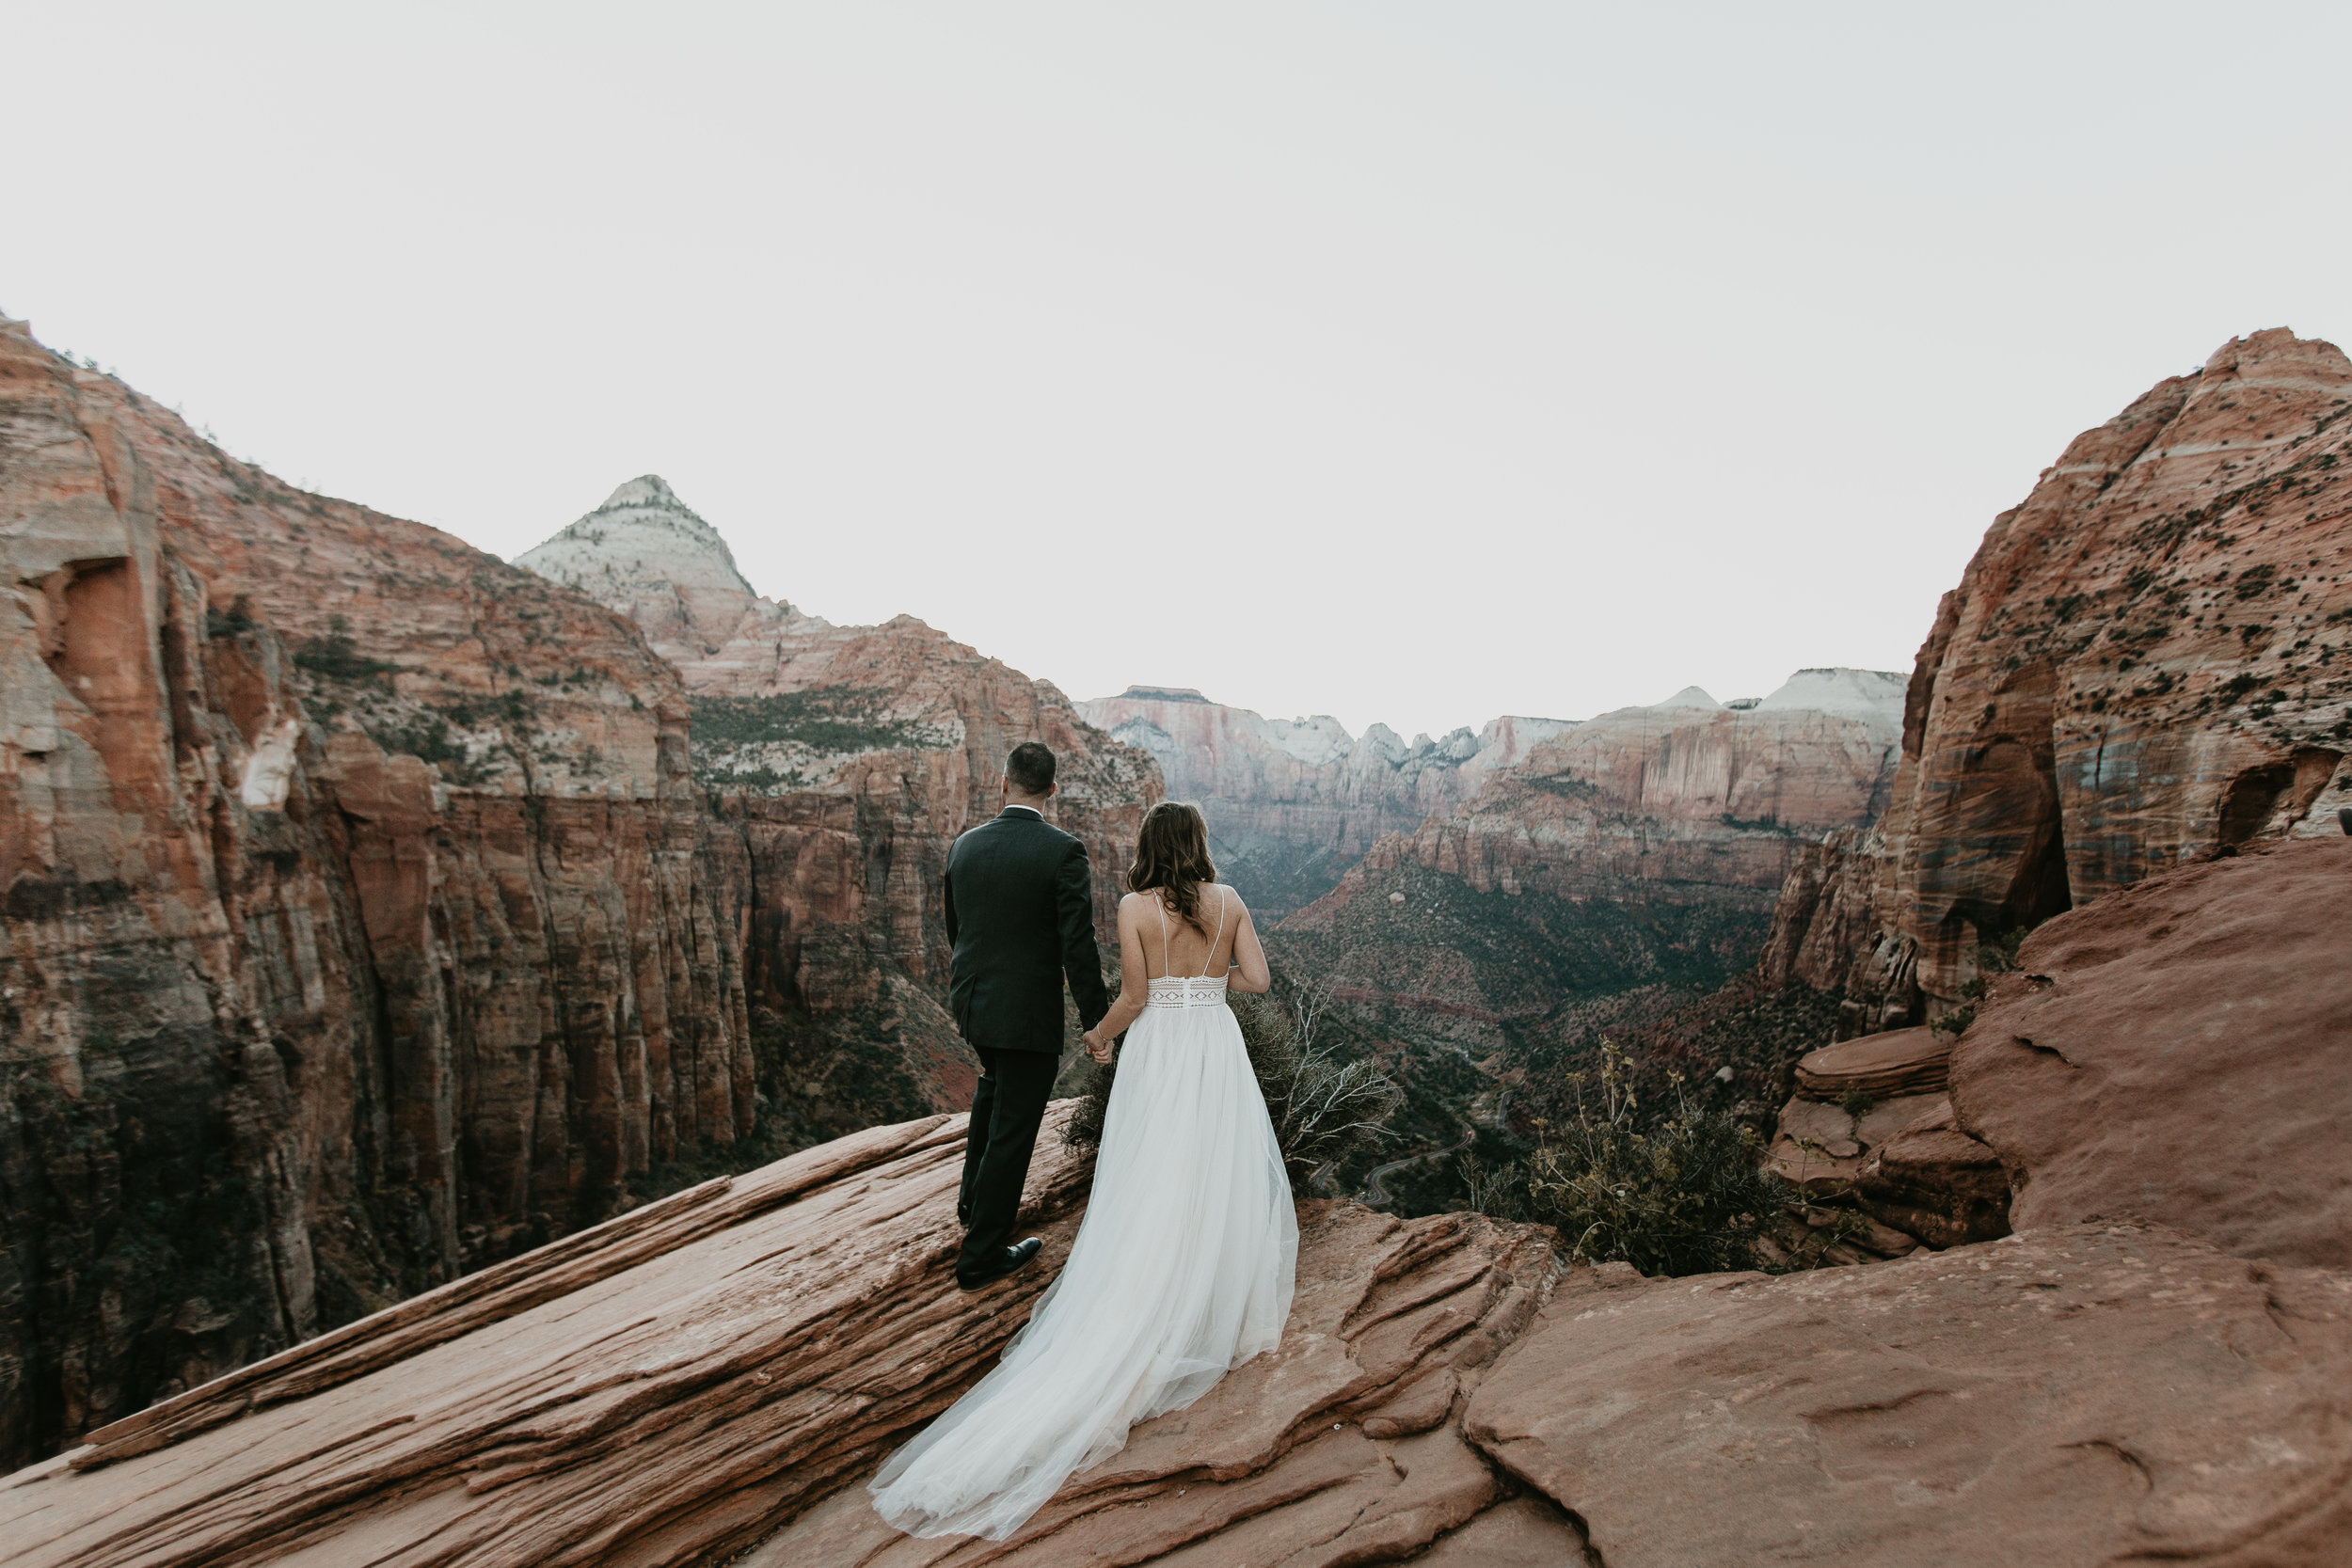 nicole-daacke-photography-zion-national-park-elopement-photographer-canyon-overlook-trail-elope-hiking-adventure-wedding-photos-fall-utah-red-rock-canyon-stgeorge-eloping-photographer-77.jpg